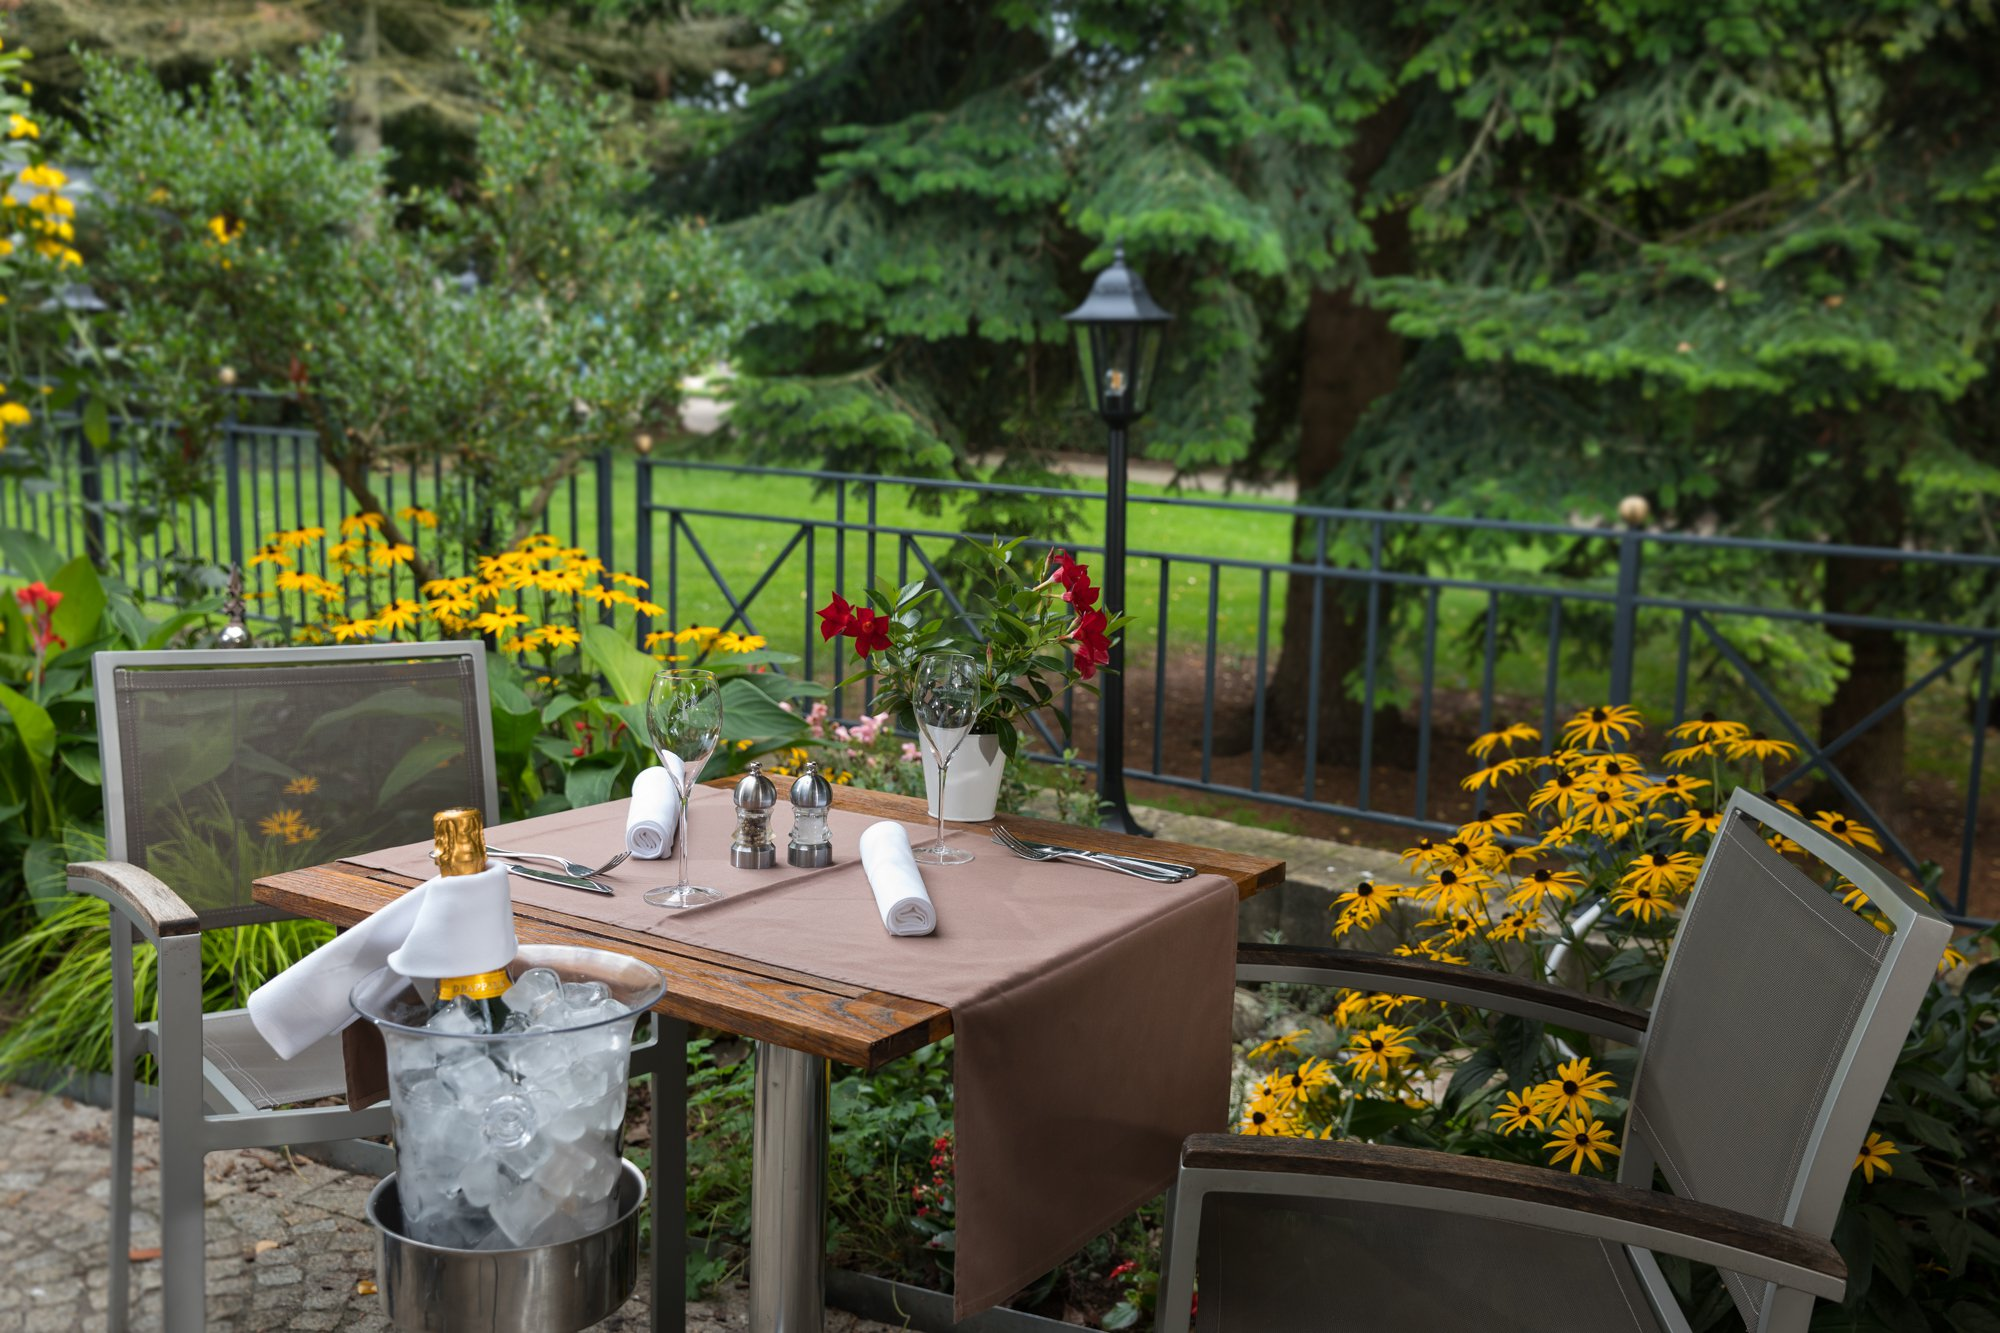 Goeres Hotels - Restaurant Le Bistrot Terrace - Luxembourg